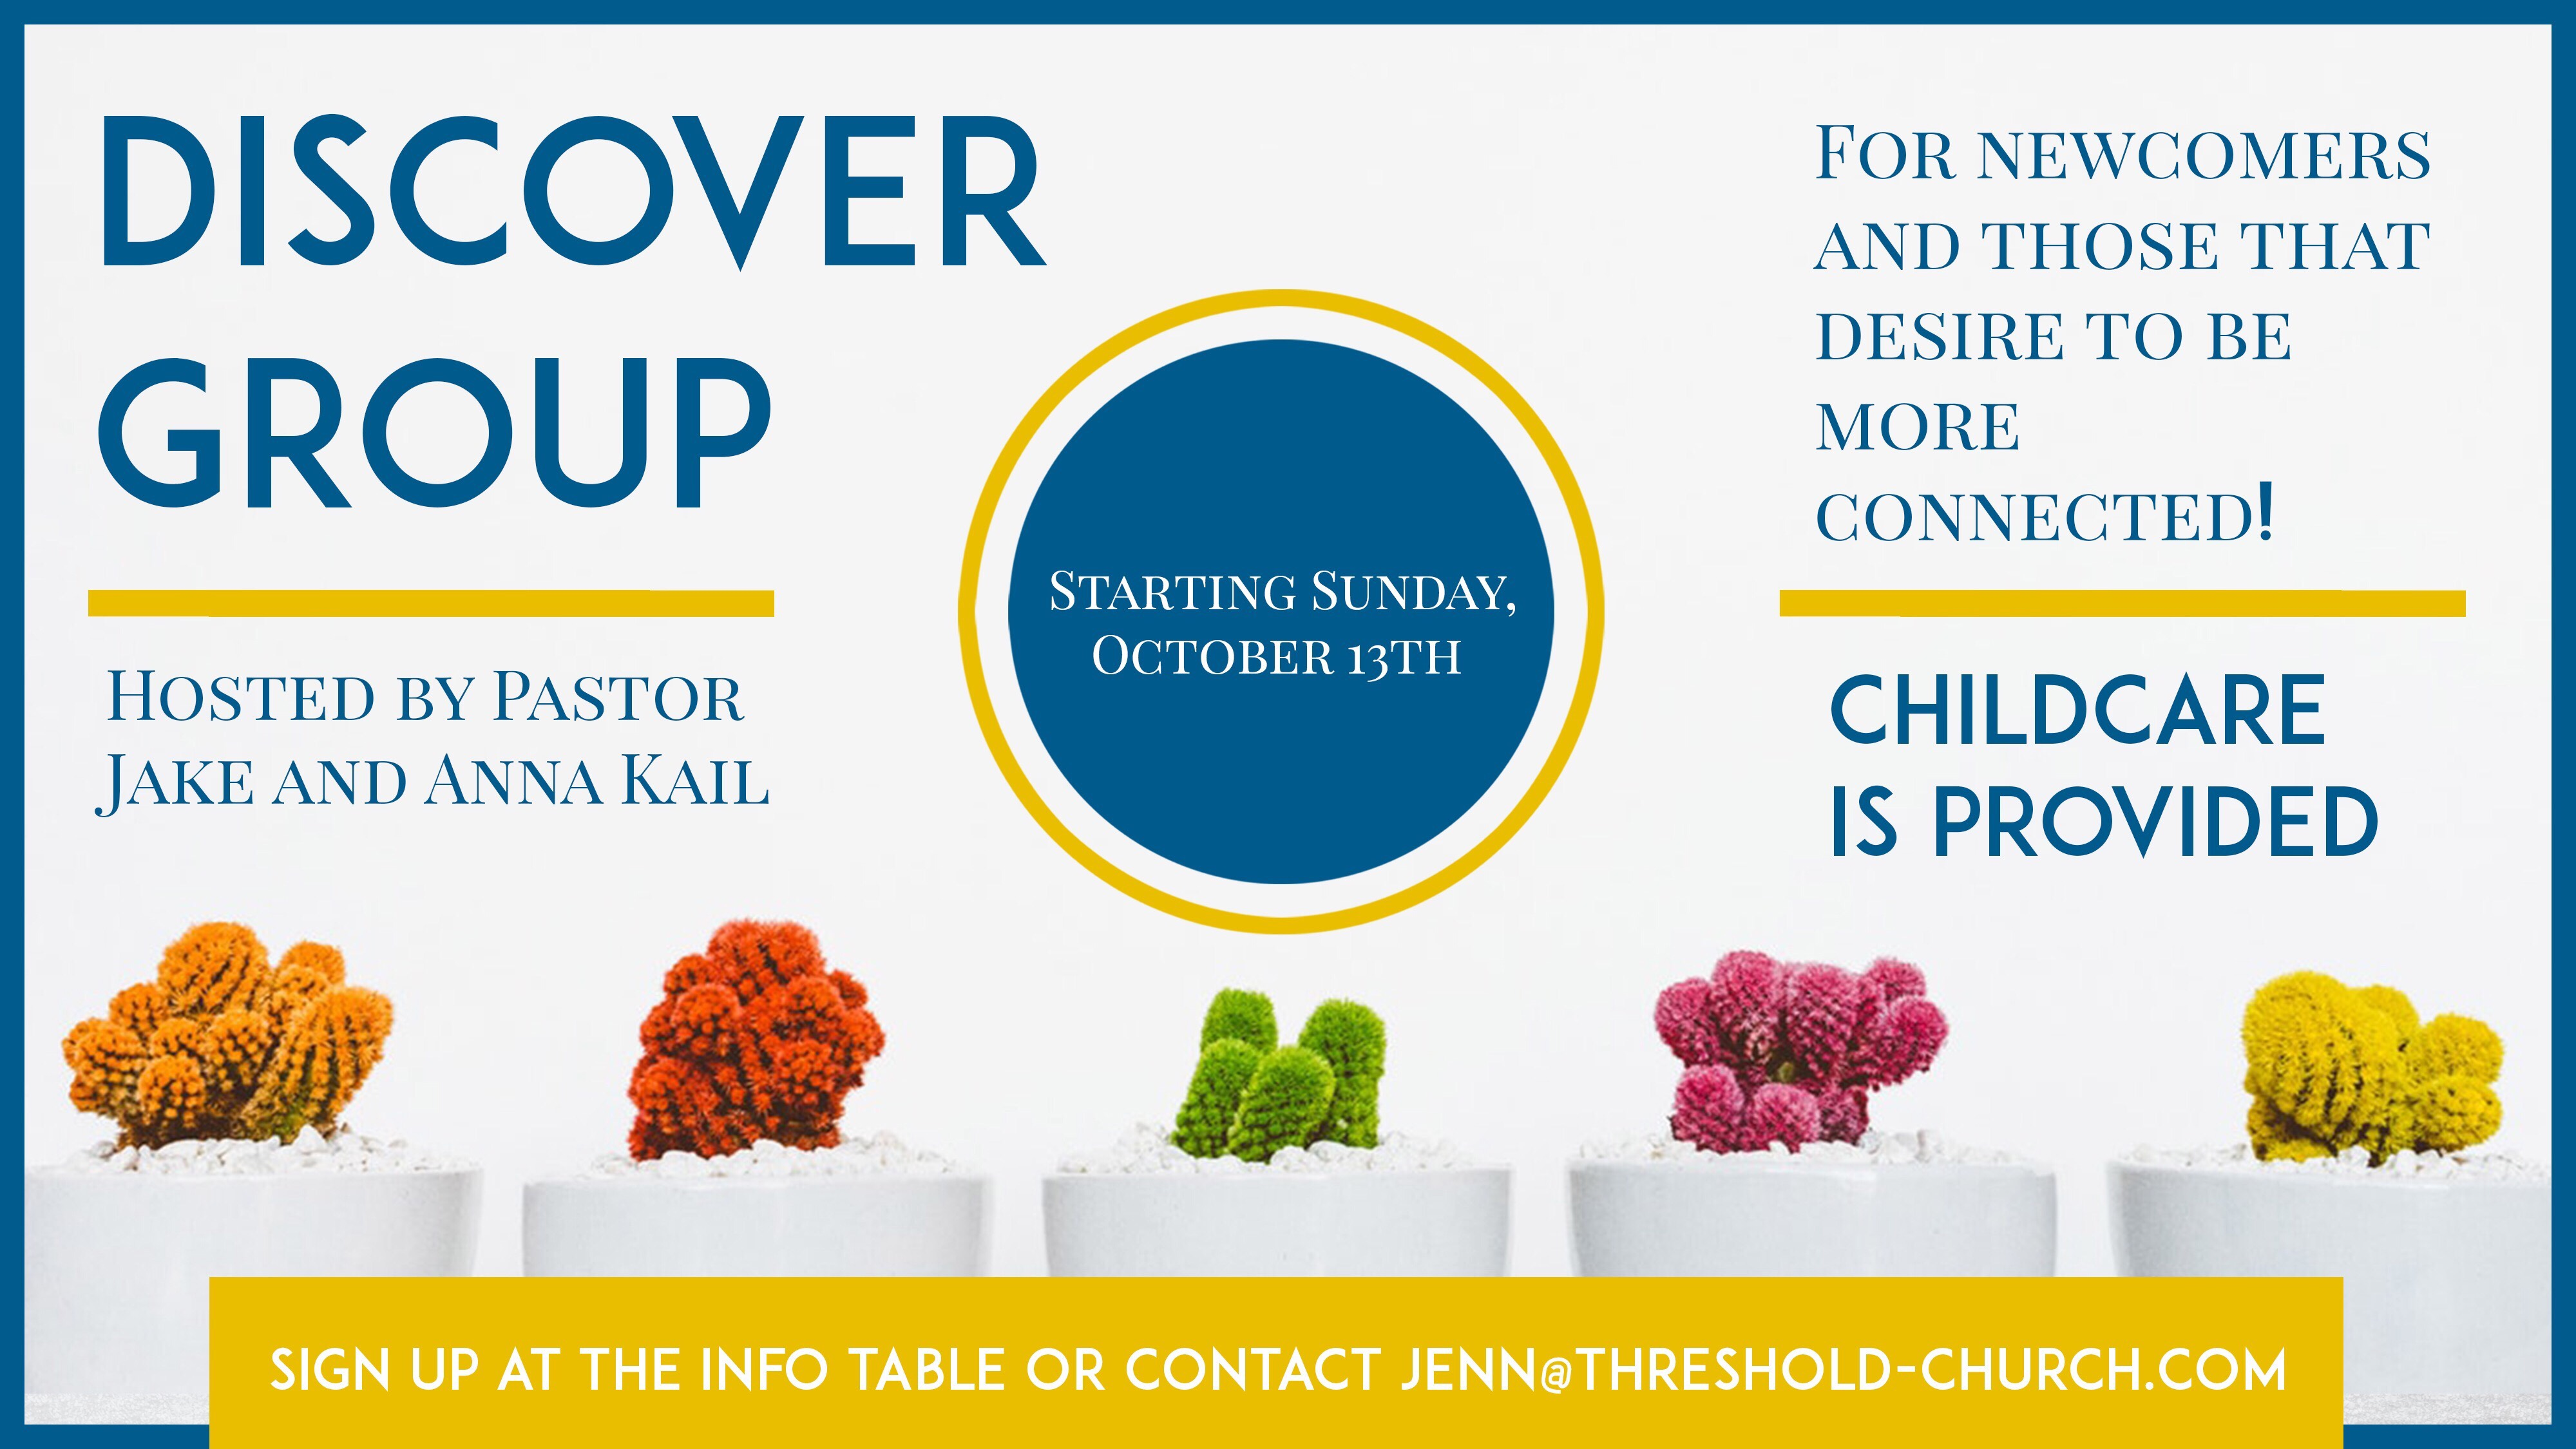 Next Discover Group Starting October 13th!